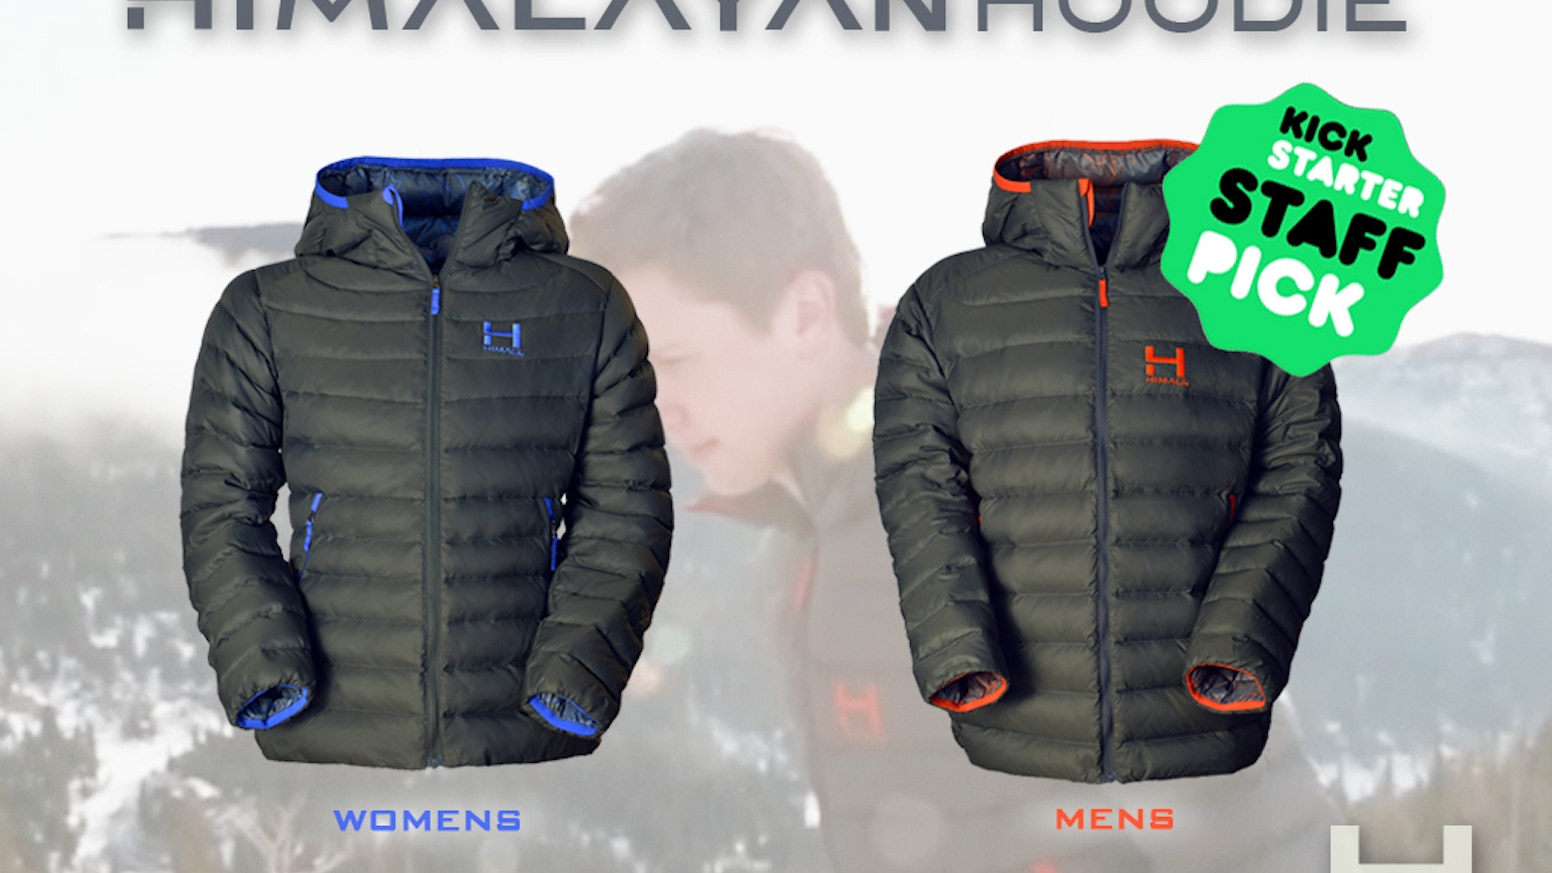 This campaign has ended but we have a limited number of complete first edition Himalayan Hoodies at www.himalilife.com